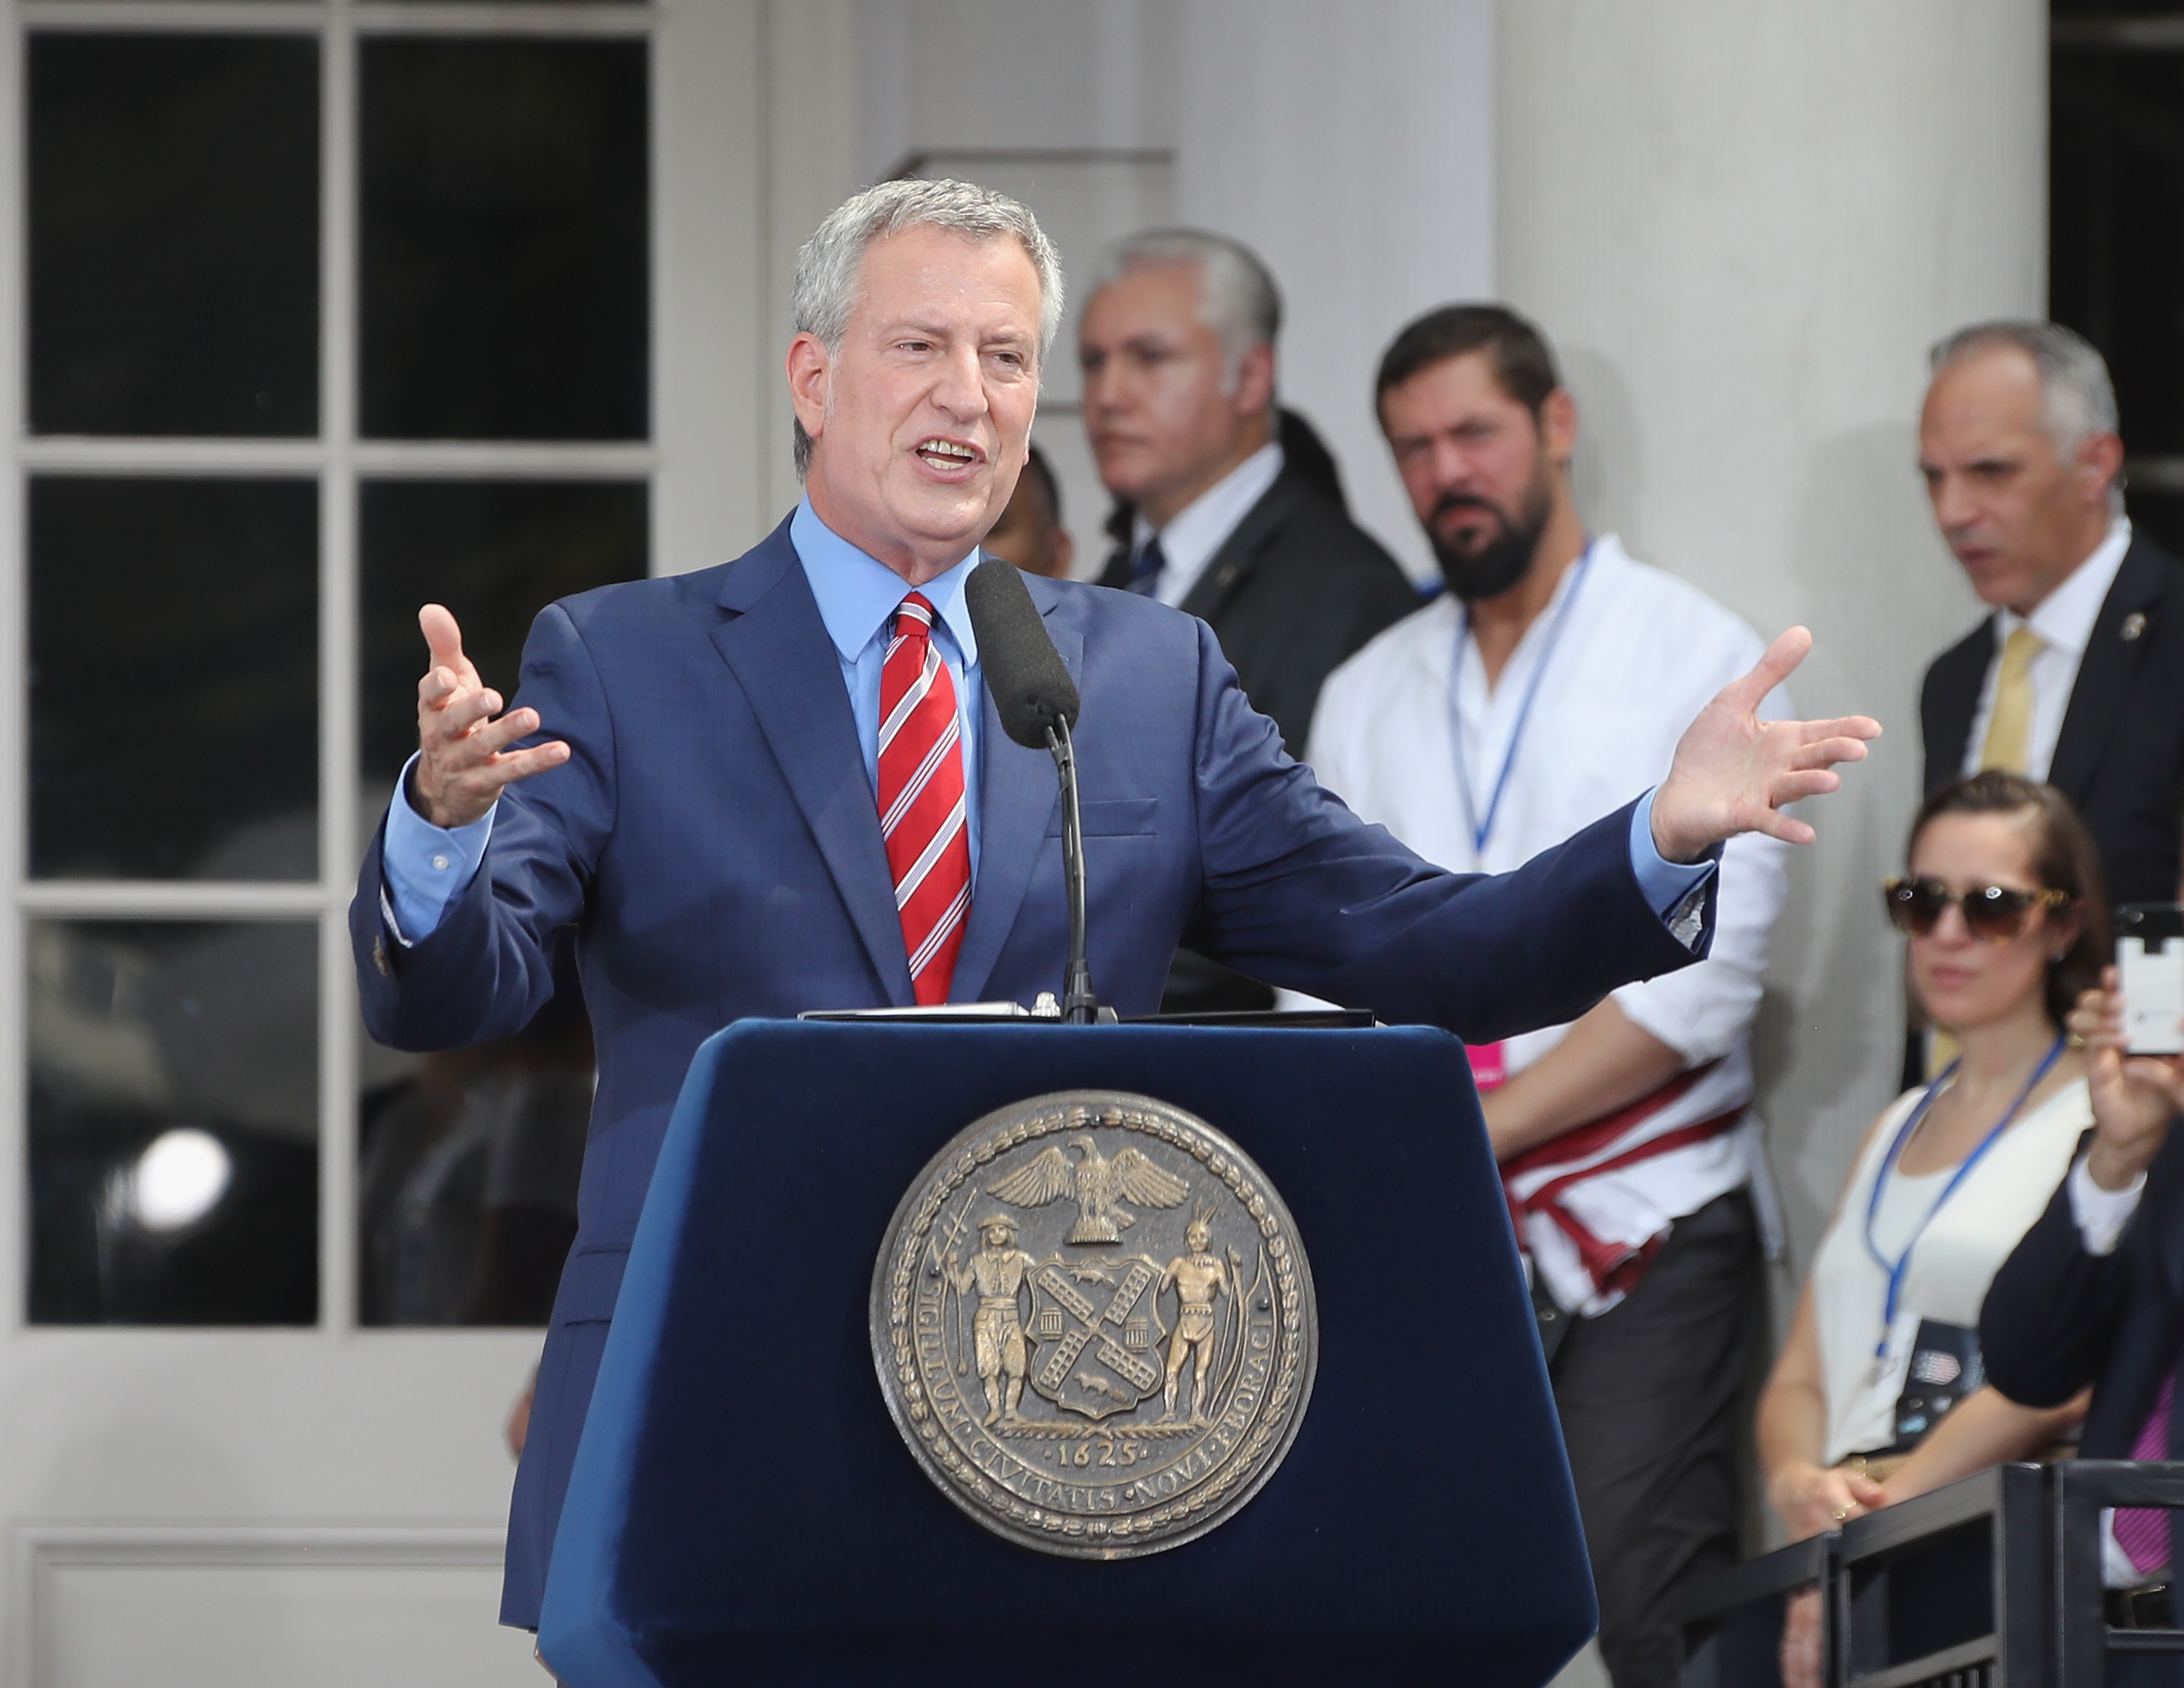 Mayor Bill de Blasio speaks at a ceremony honoring the members of the United States Women's National Soccer Team at City Hall on July 10, 2019 in New York City. The honor followed a ticker tape parade up lower Manhattan's  Canyon of Heroes  to celebrate their gold medal victory in the 2019 Women's World Cup in France.